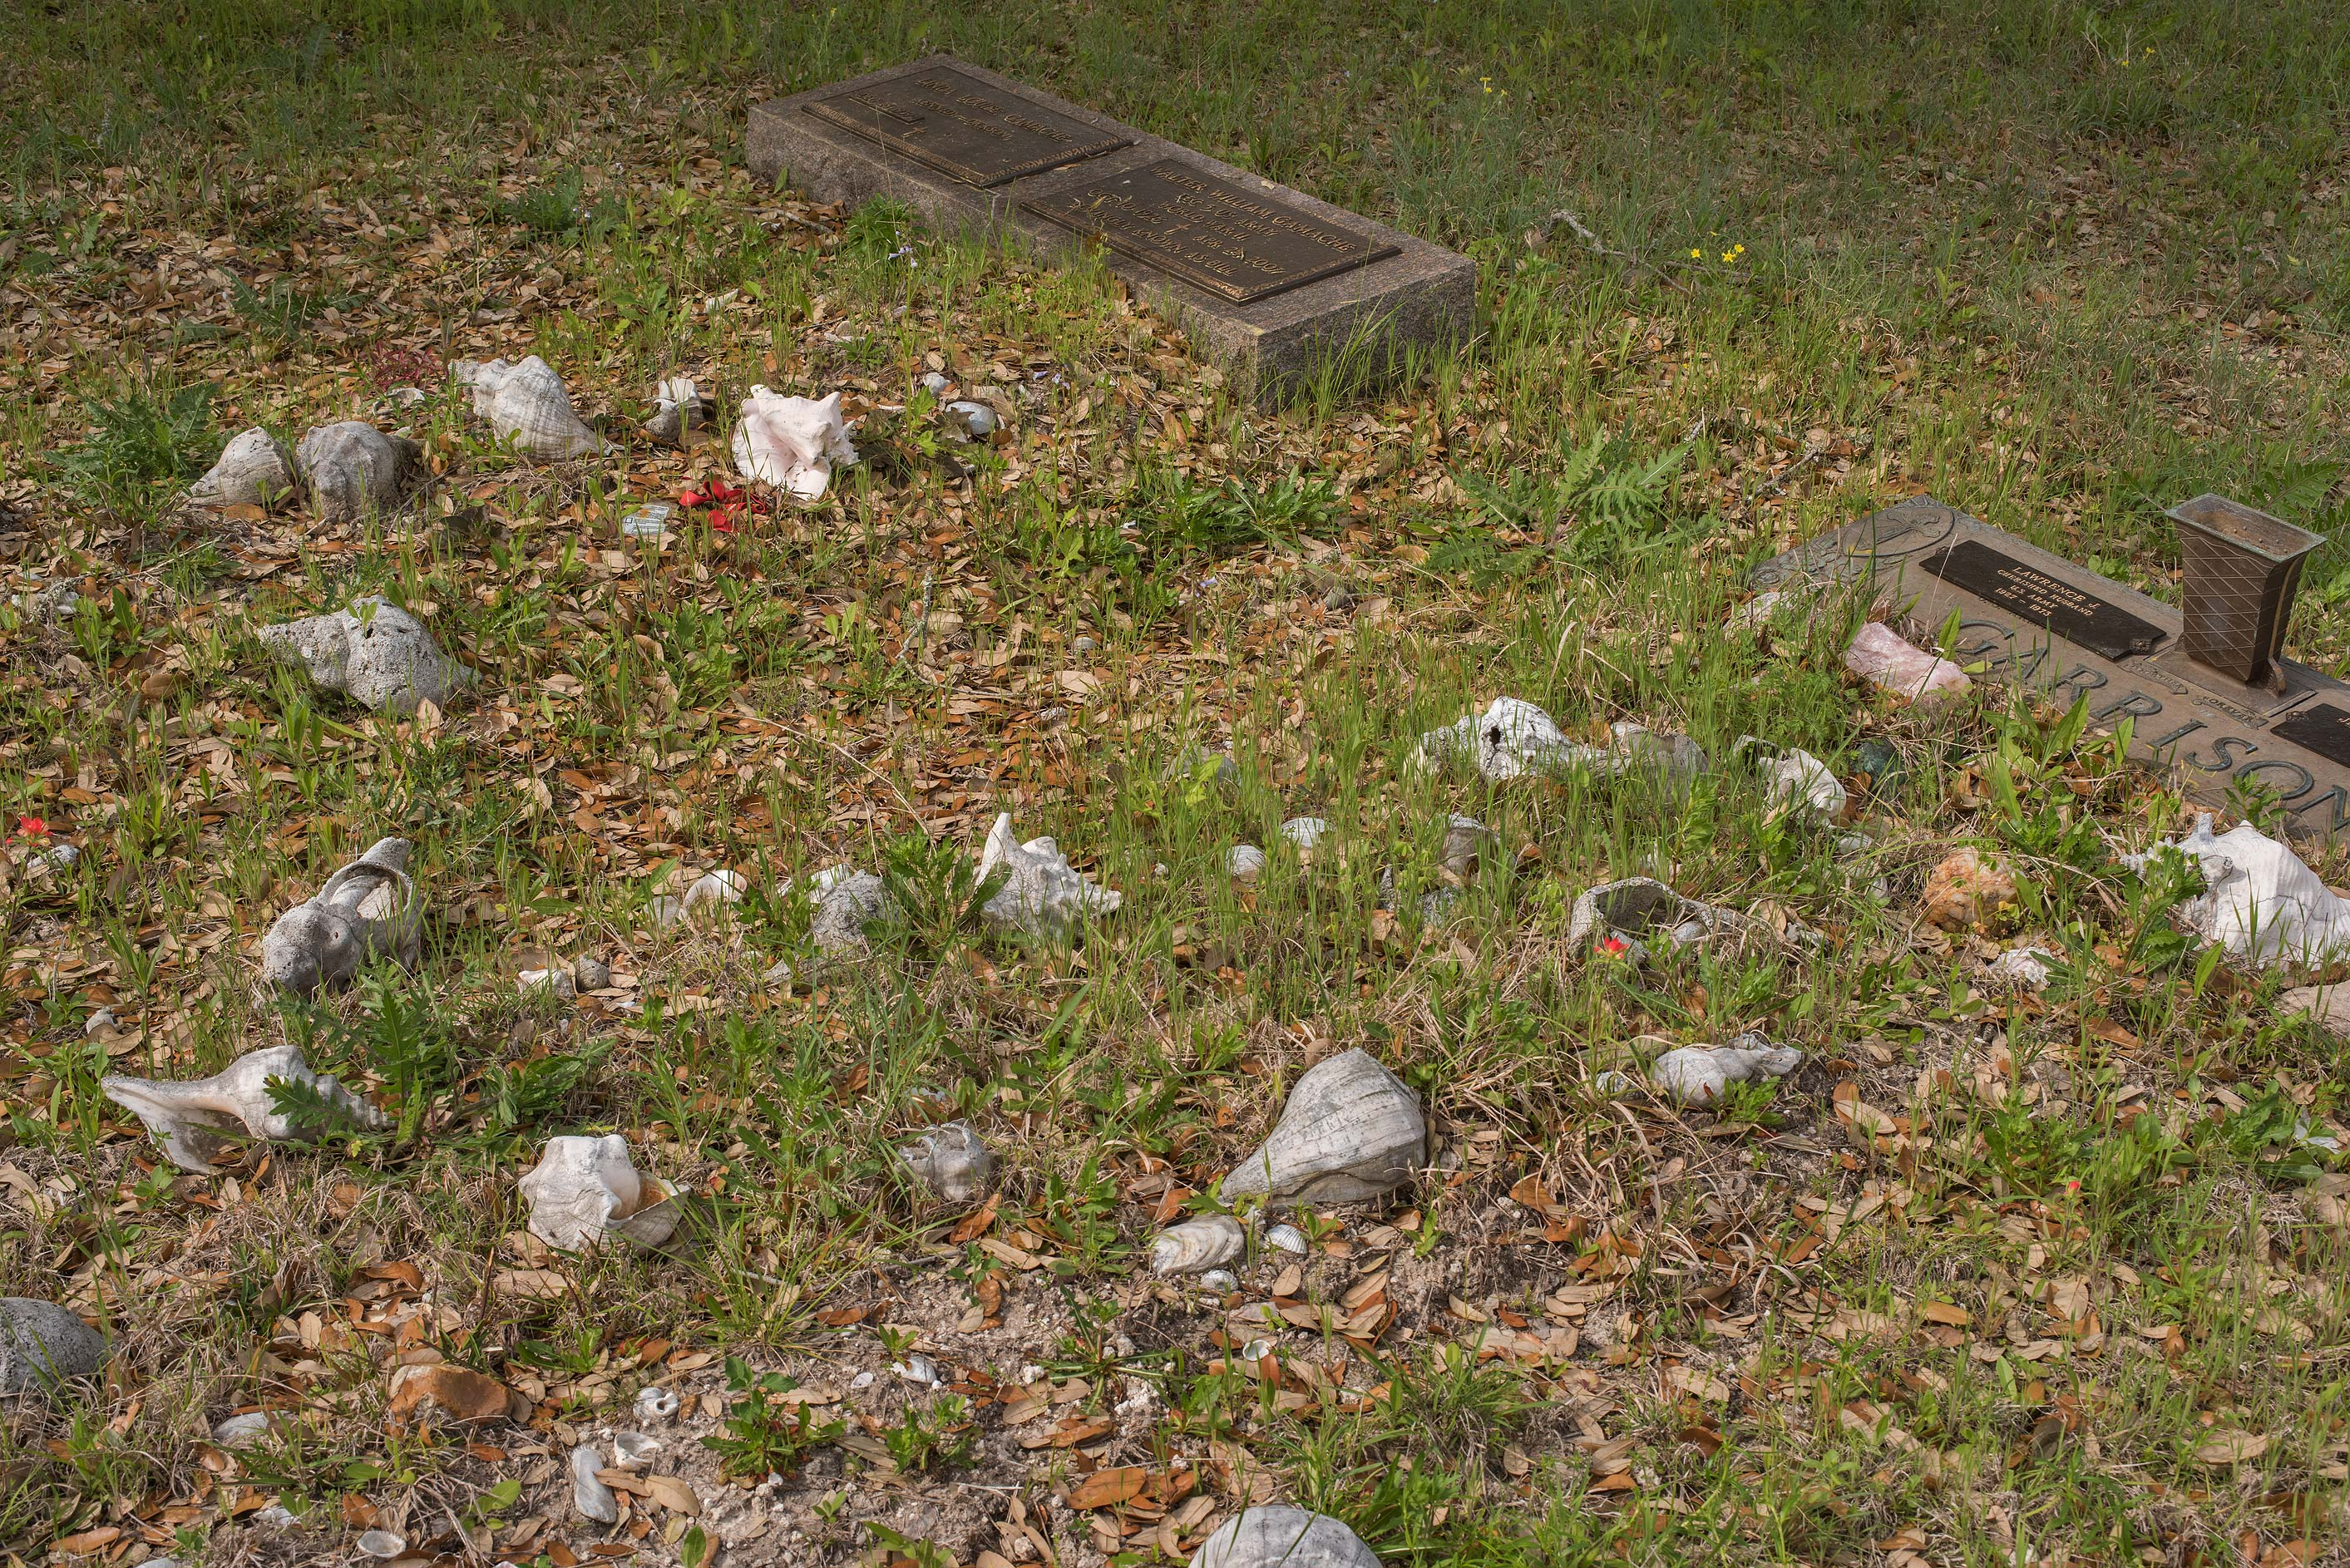 Sea shells on tombs in Christian Cemetery. Burton, Texas